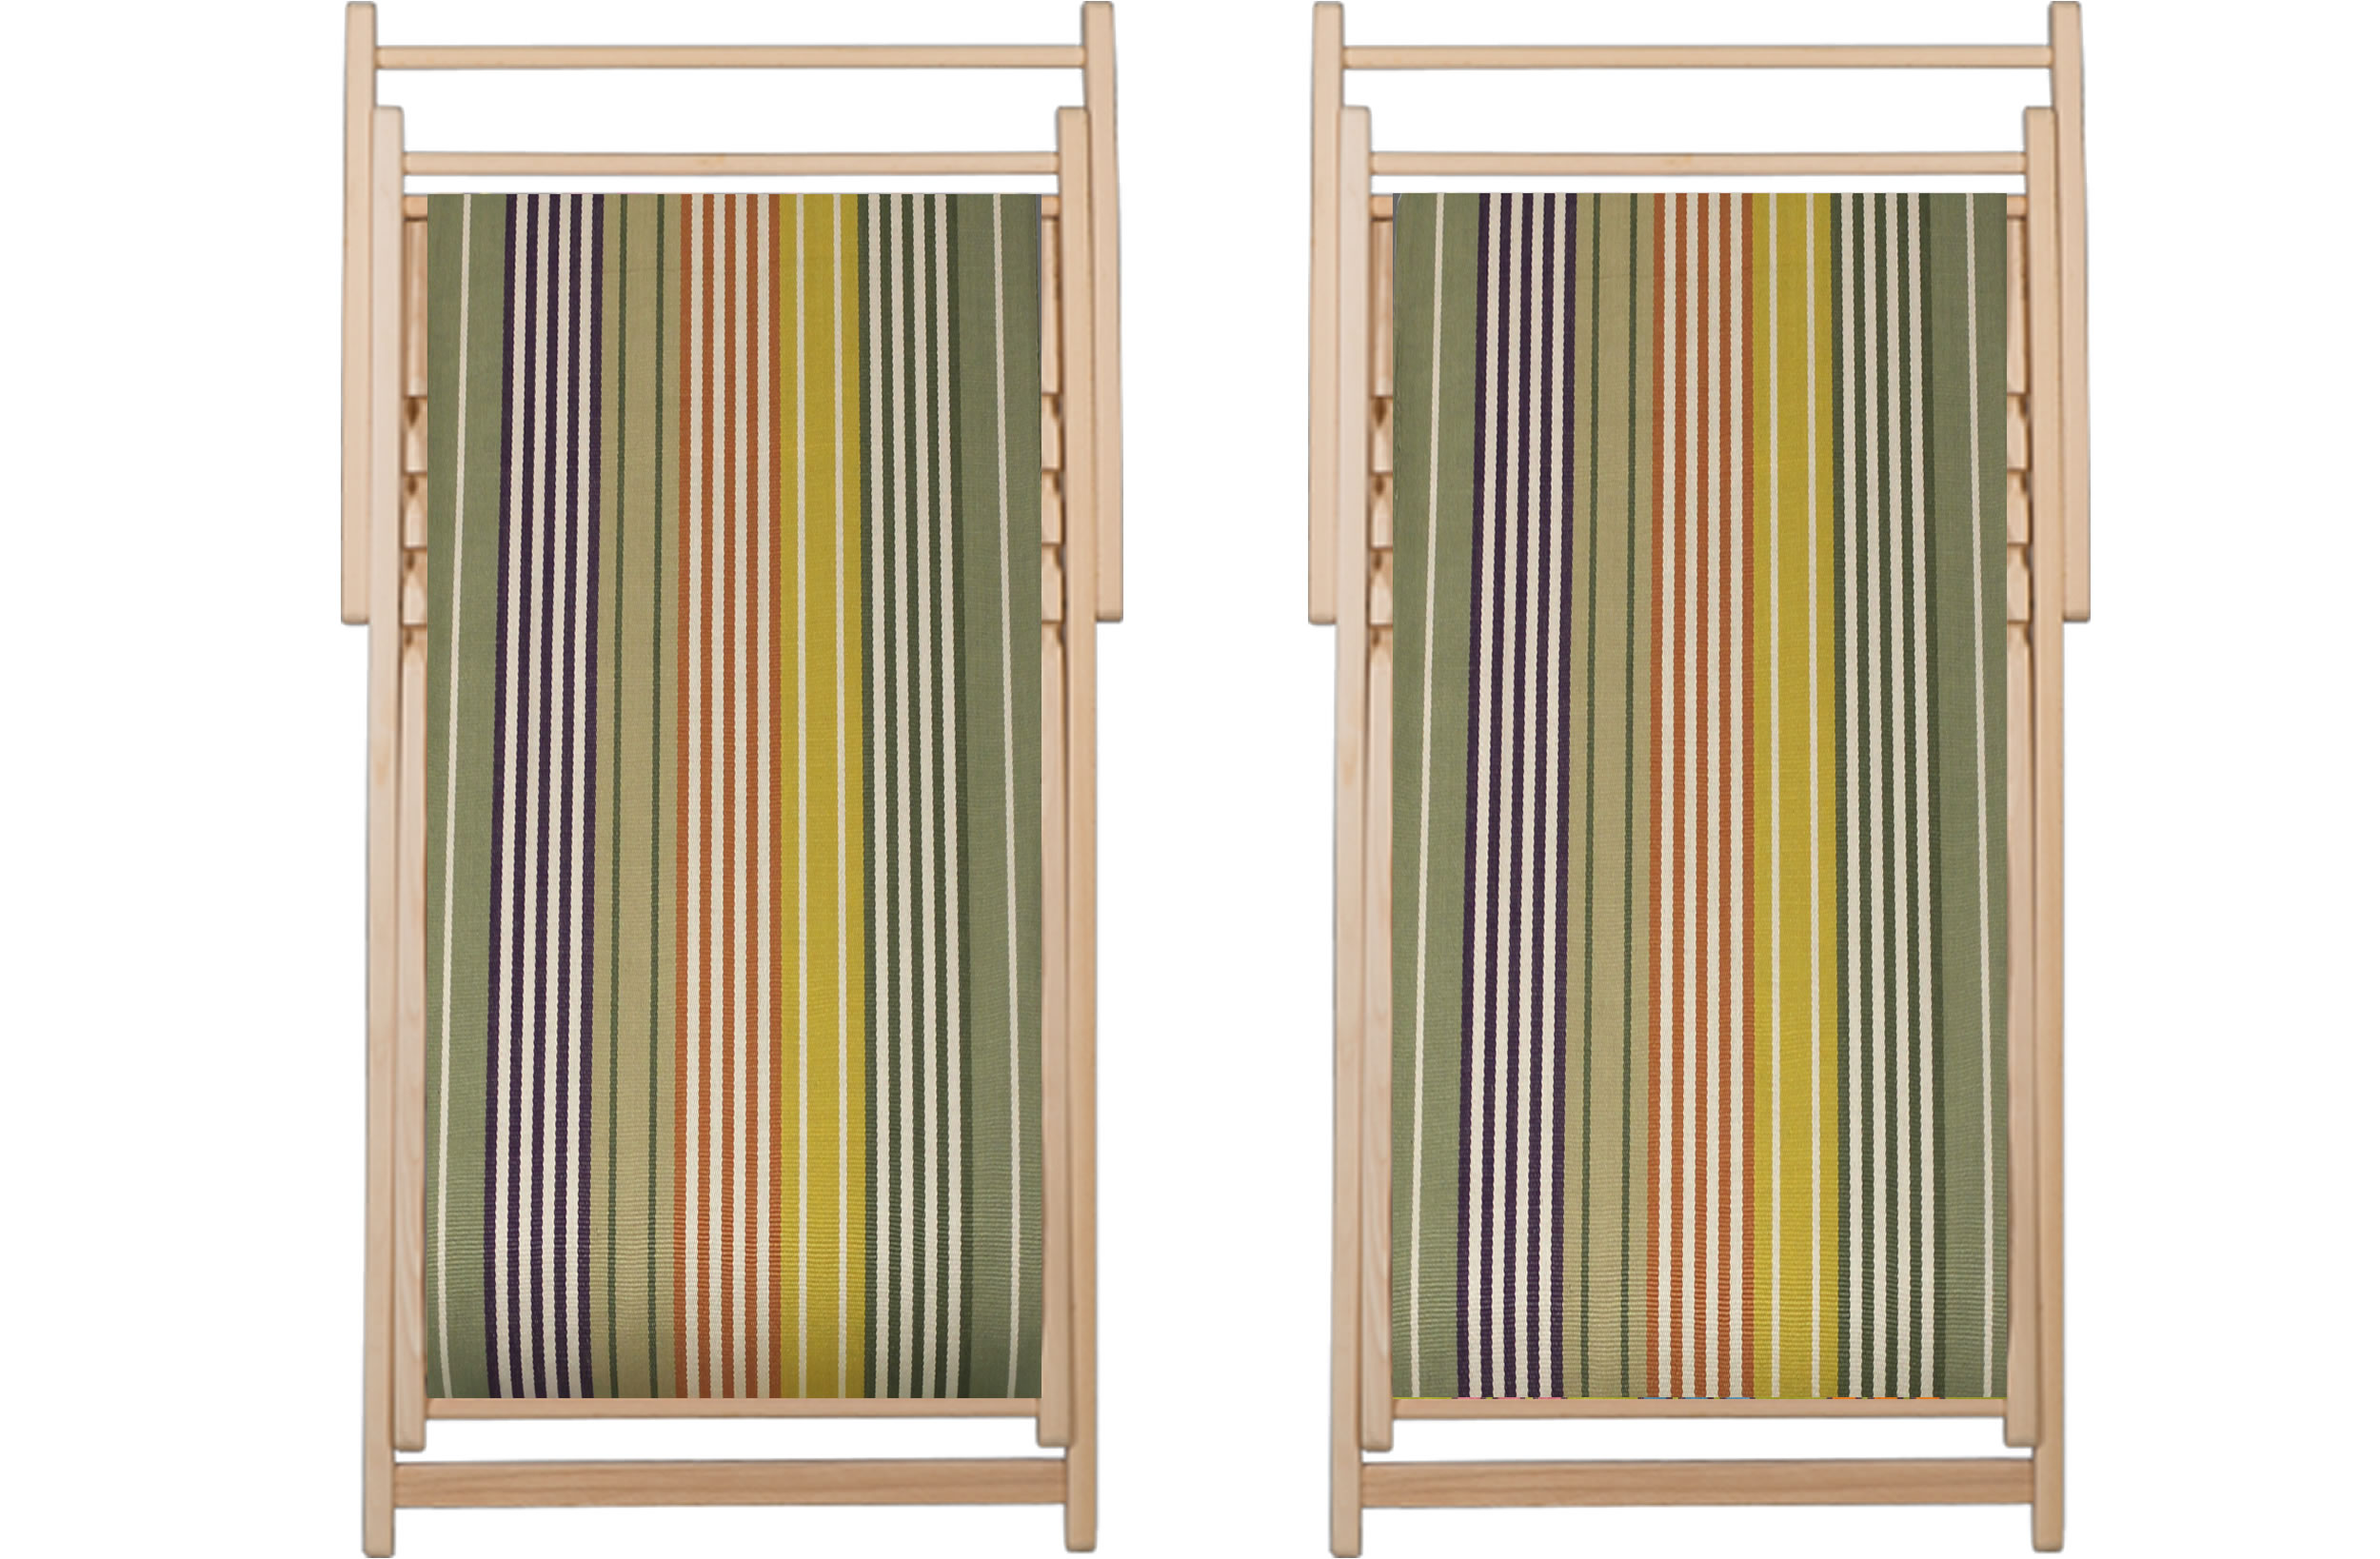 Sage Green Deckchairs | Wooden Folding Deck Chairs Boules Stripes